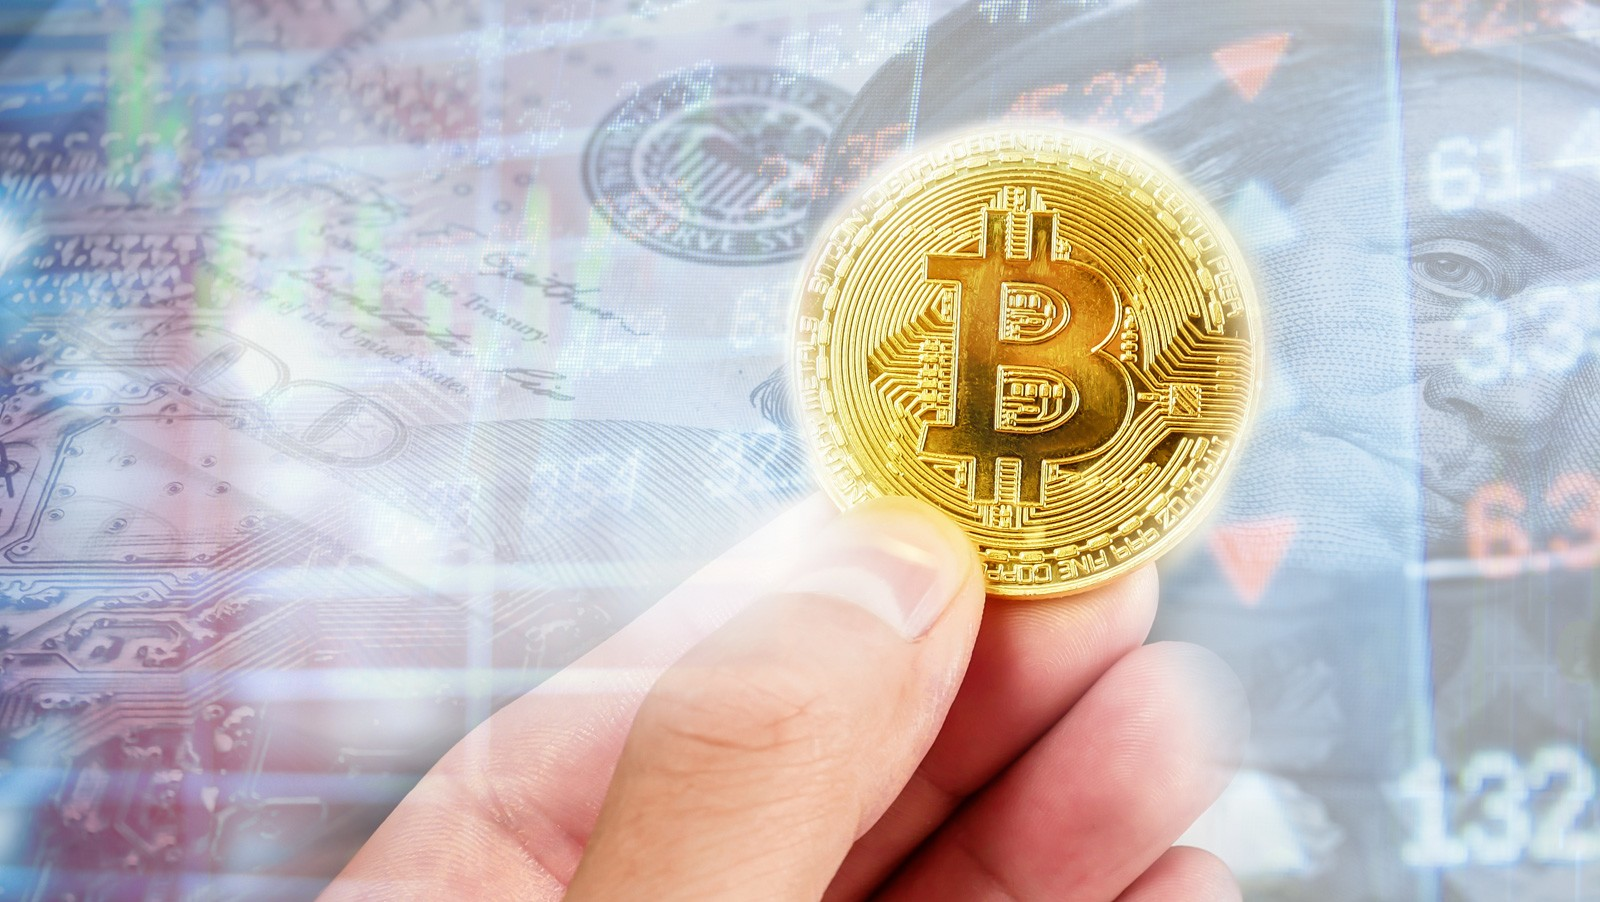 Bitcoin may be sniffing out dollar trouble